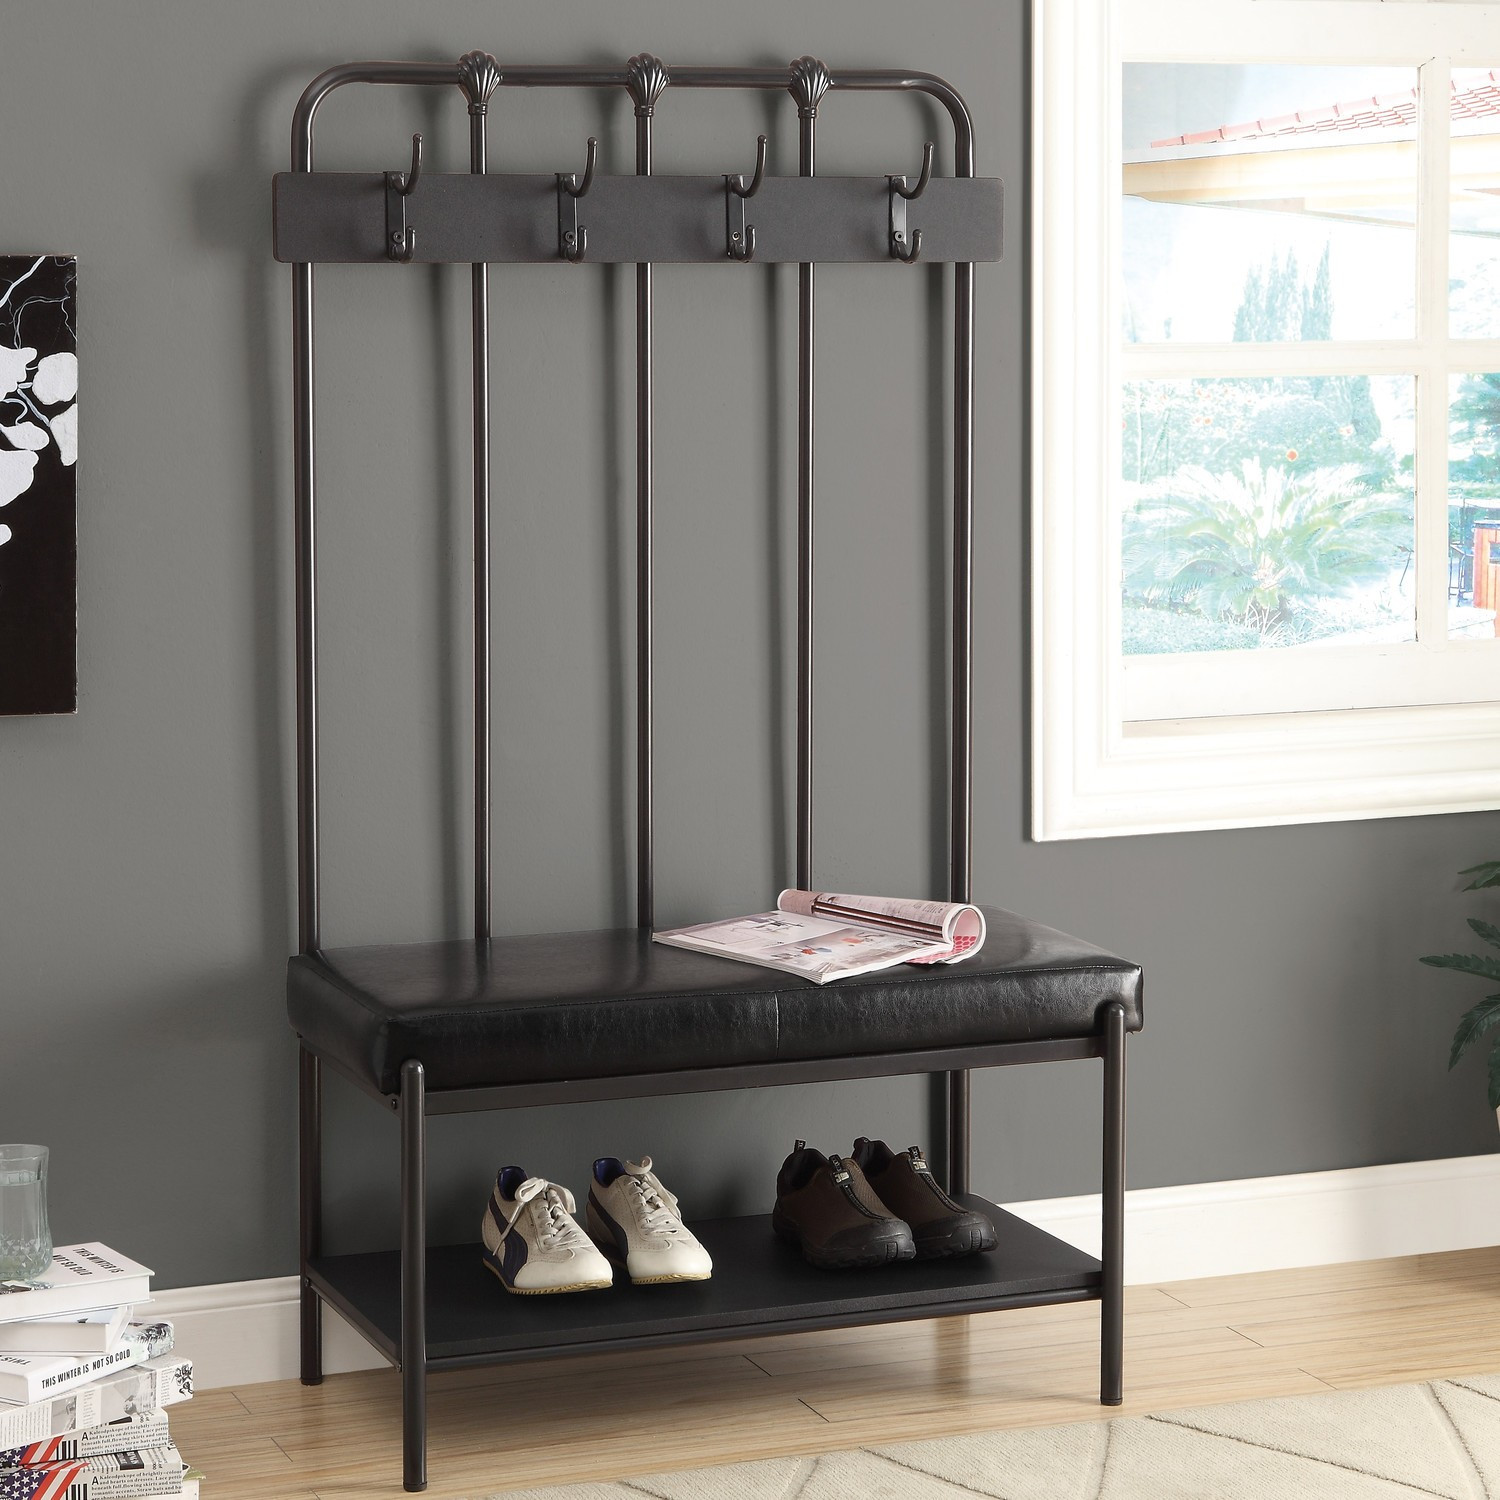 Best ideas about Entryway Bench With Hooks . Save or Pin Entryway Shoe Bench And Hooks — Home Design Bring a New Now.